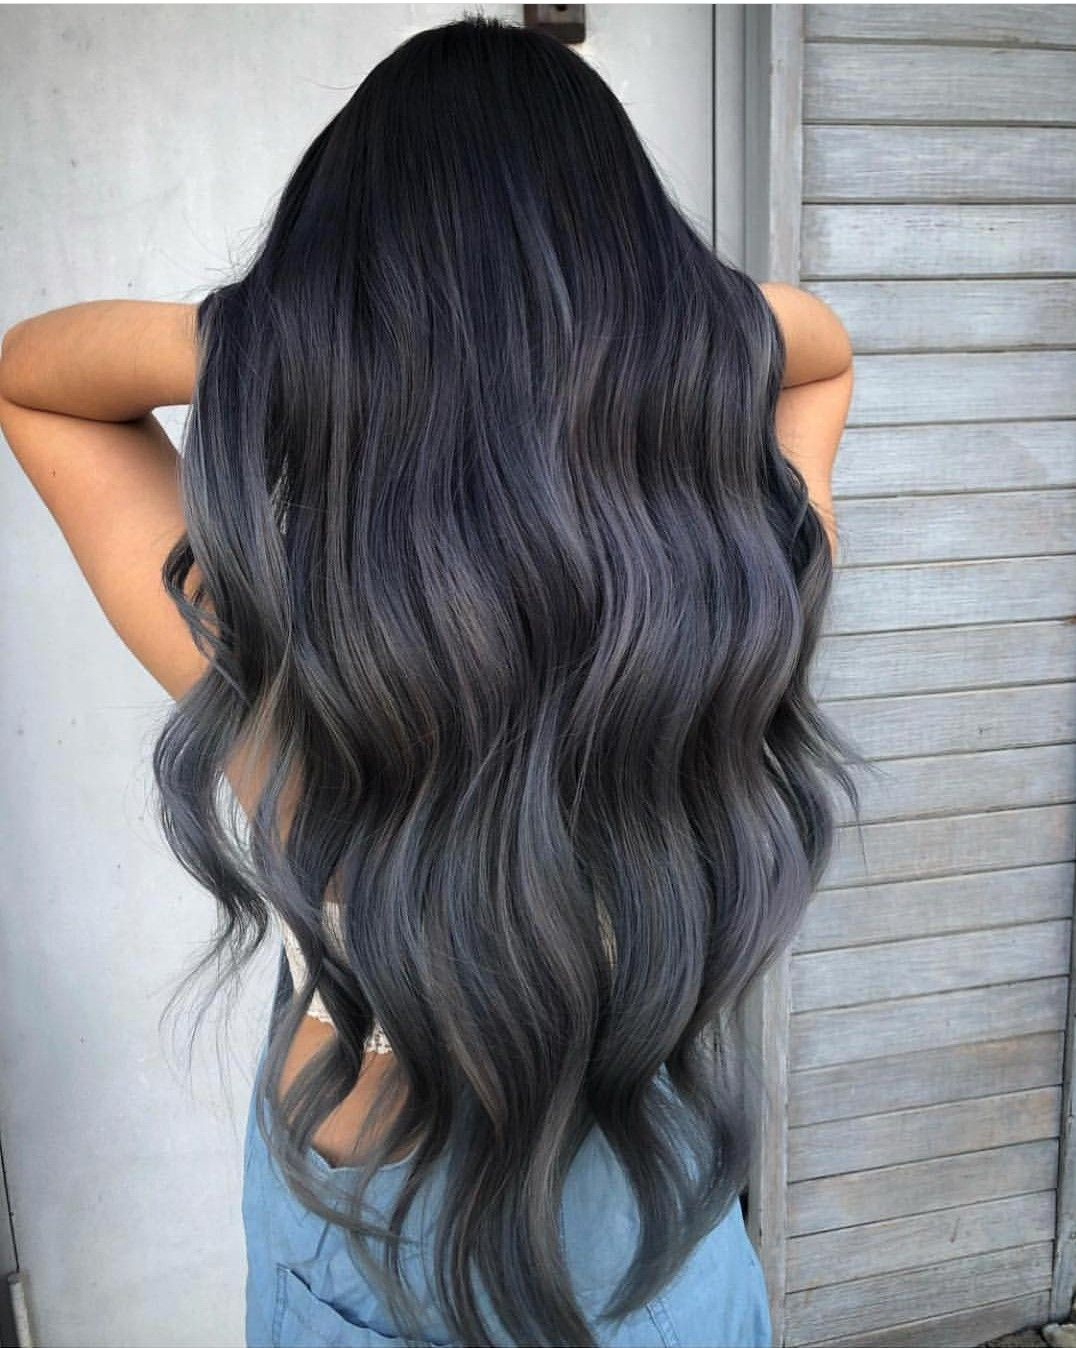 Pin By Hailey Puckett On Hair And Color Dark Ombre Hair Long Hair Color Grey Ombre Hair